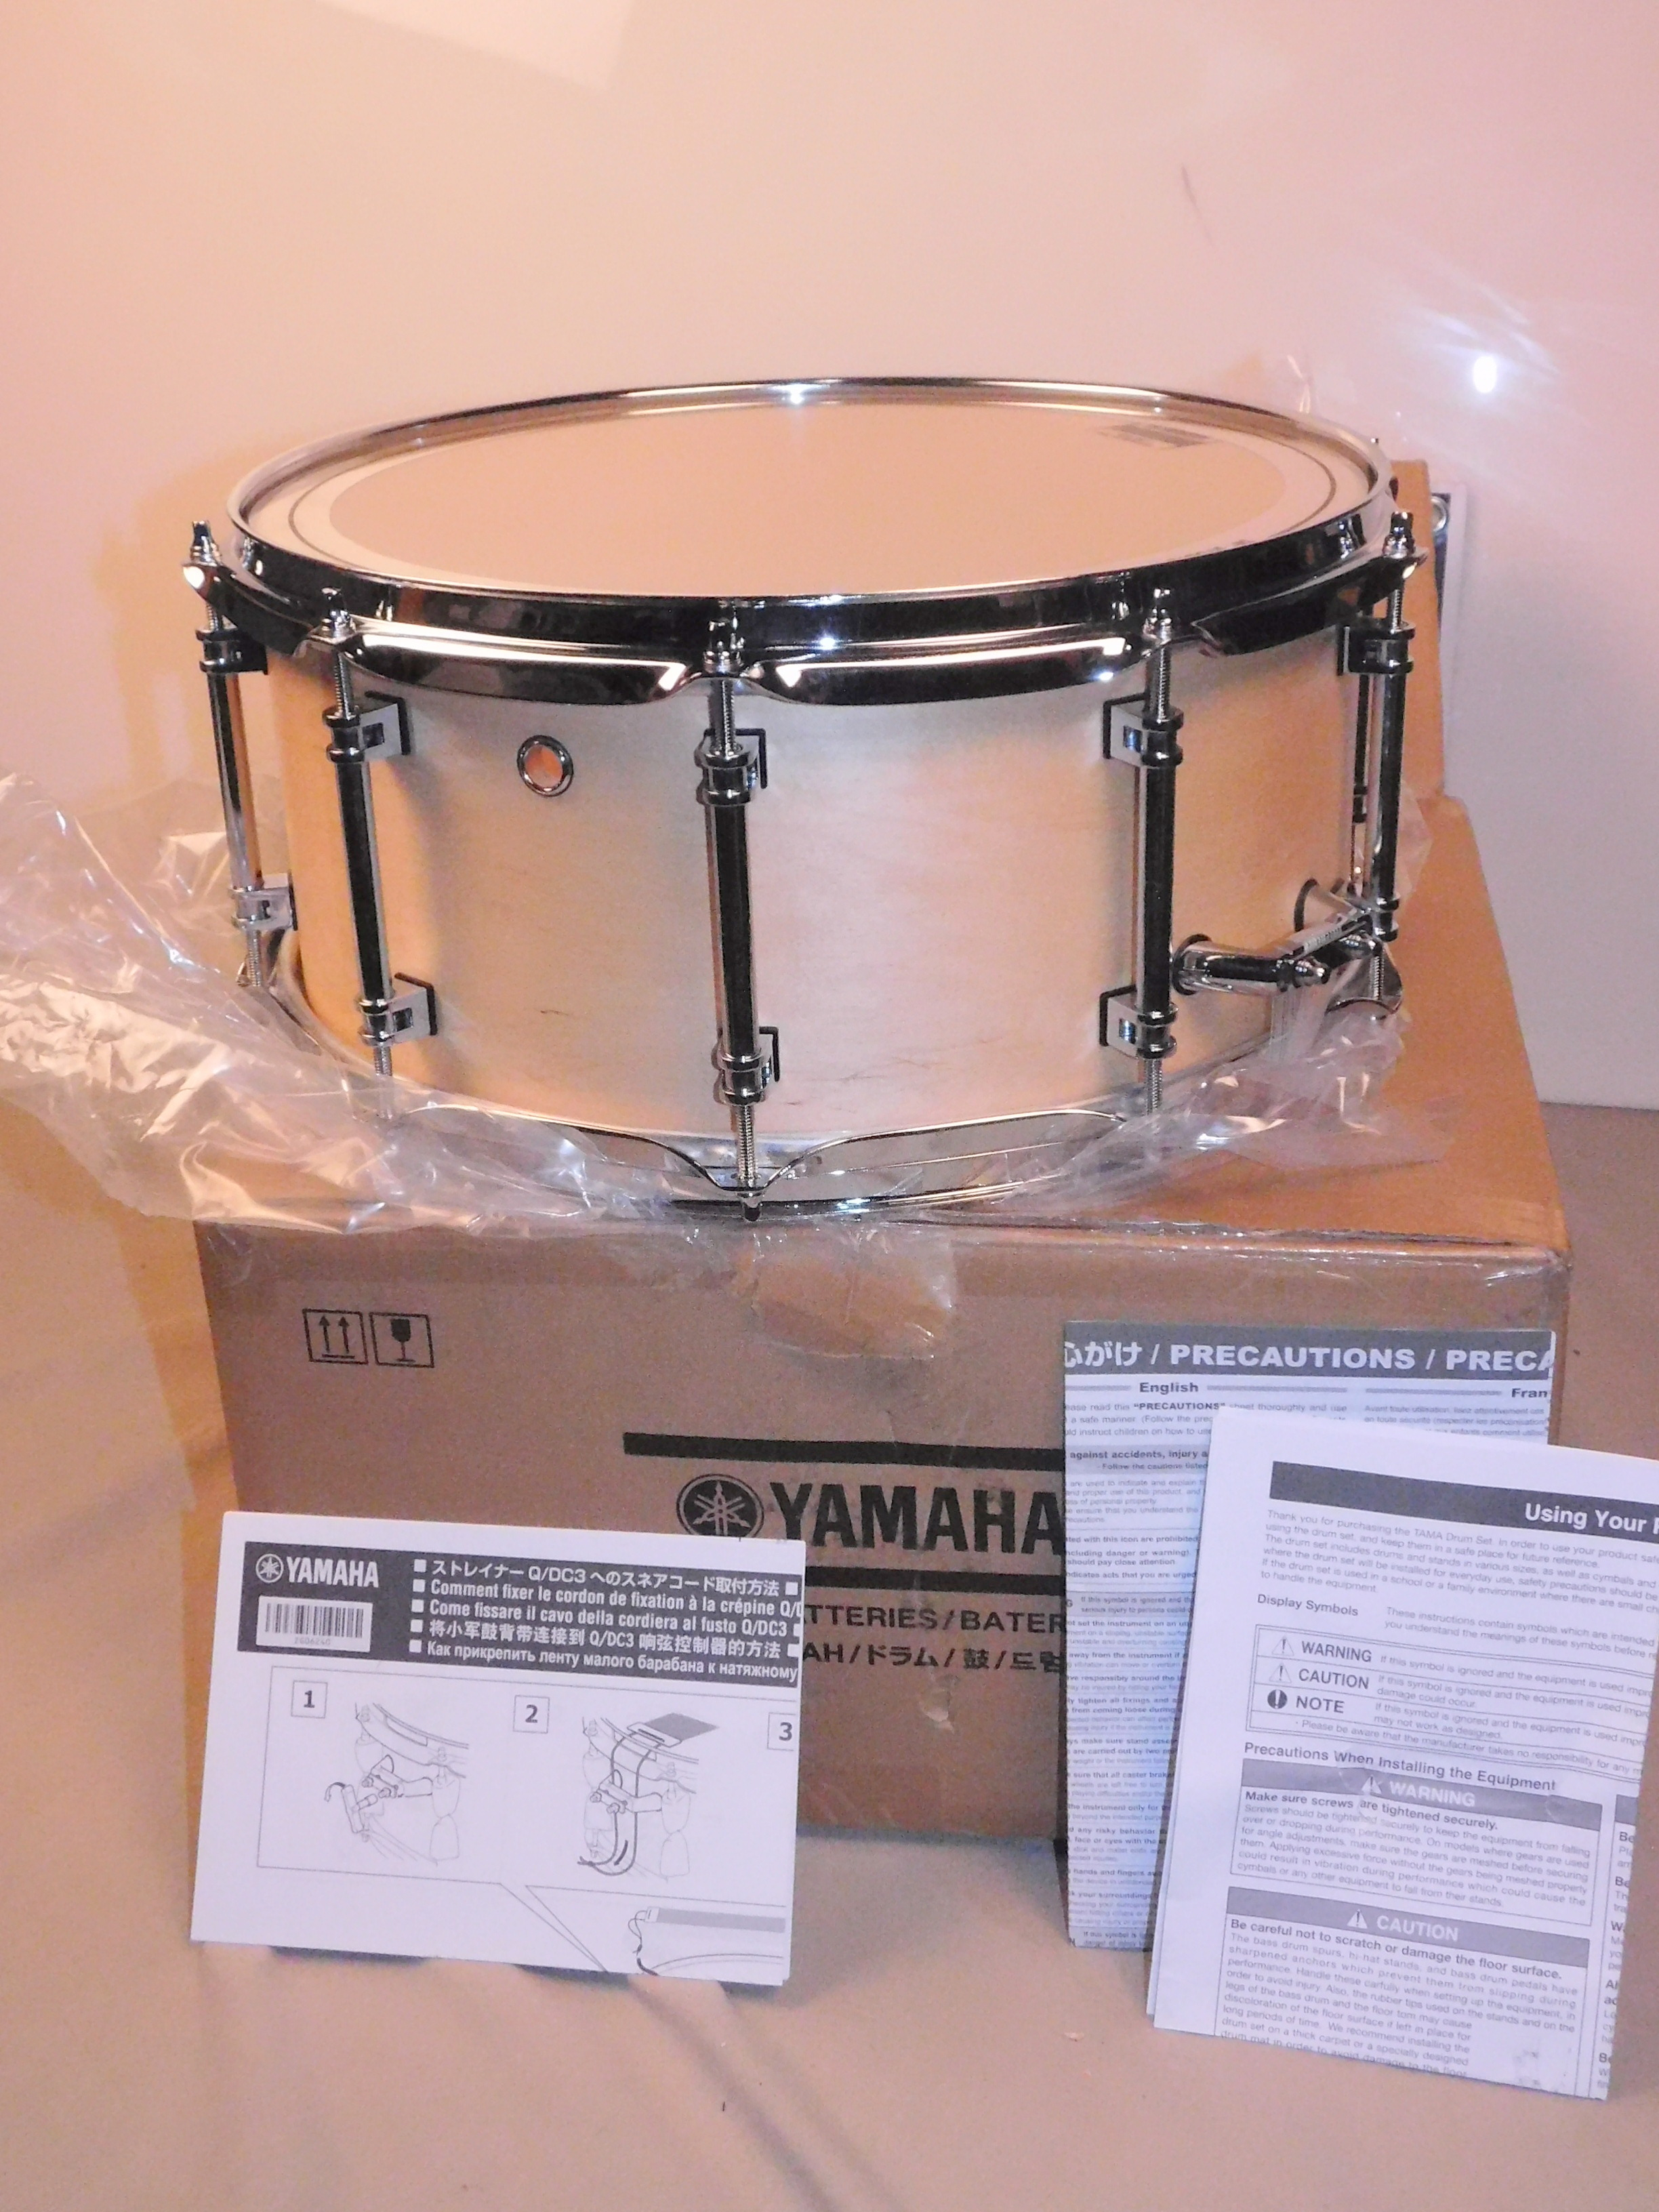 YAMAHA CONCERT SNARE - VERY FRESH CONDITION Maple Snare Drum- IN ORIGINAL BOX!!!